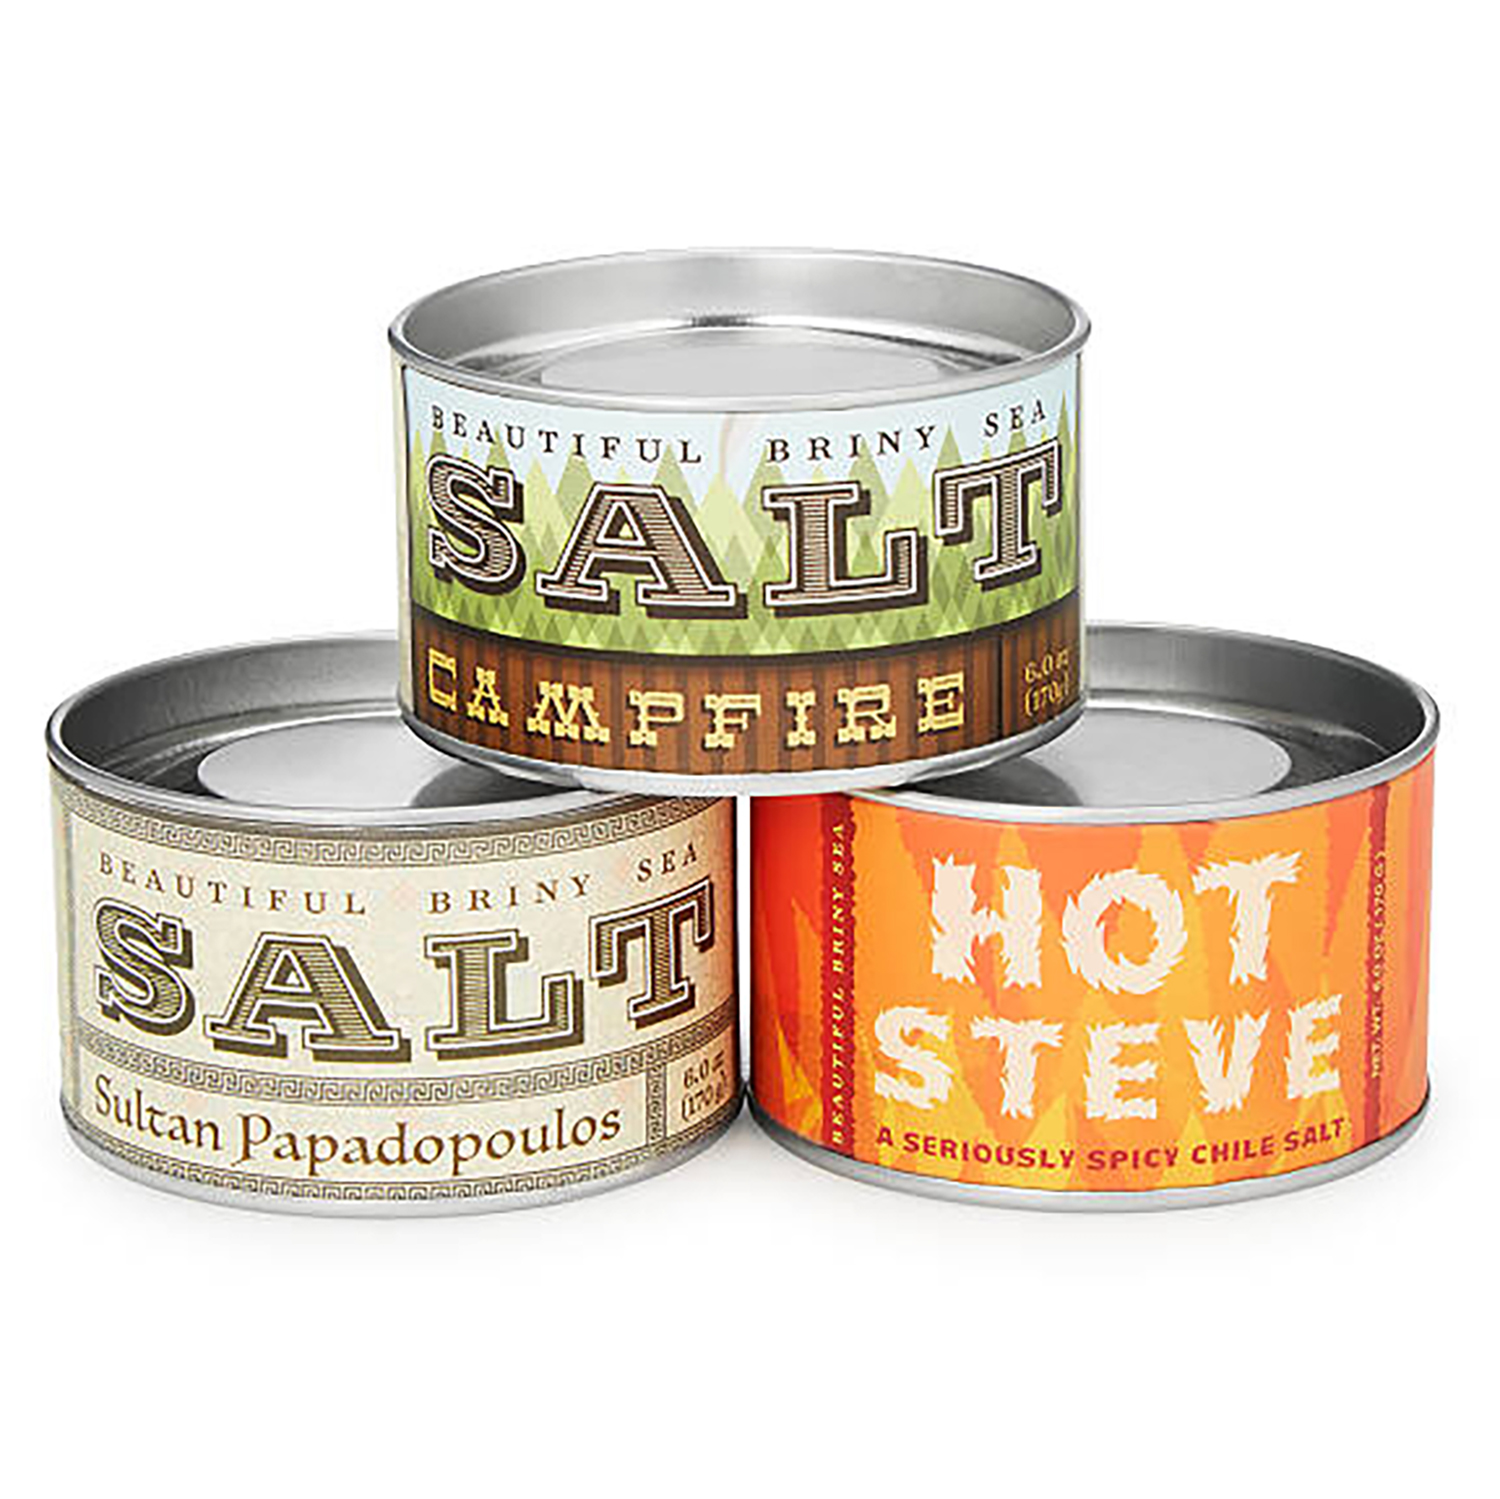 Christmas Gifts for Brothers: Bring the Heat Sea Salt Set